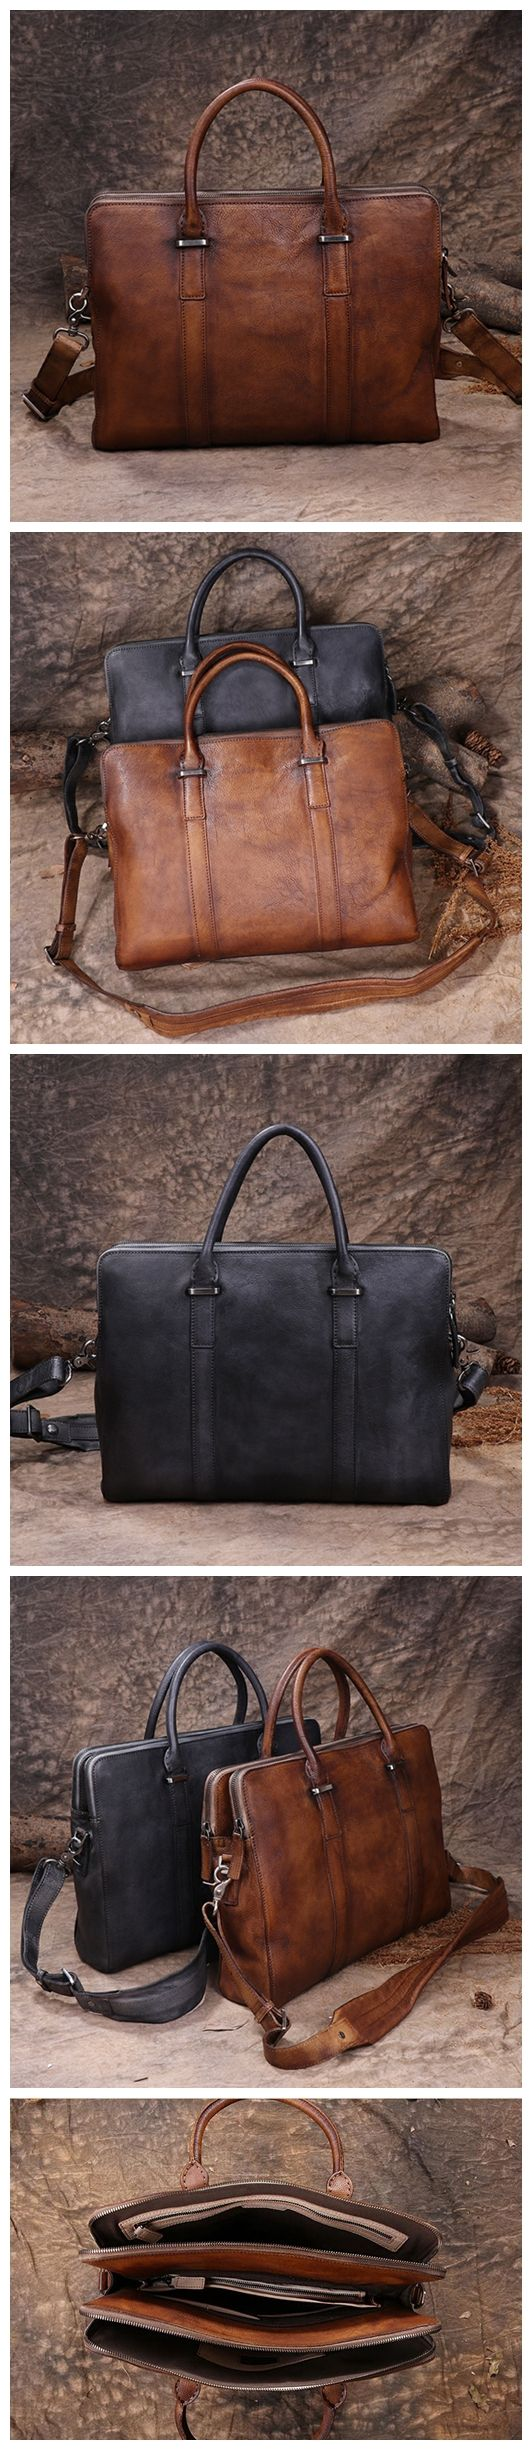 Handmade Vintage Leather Briefcase Men's Business Bag Handbag Men Fashion Laptop Bag 14119 Overview: Design: Vintage Leather Men Briefcase In Stock: 4-5 days For Making Include: Only Leather Briefcase